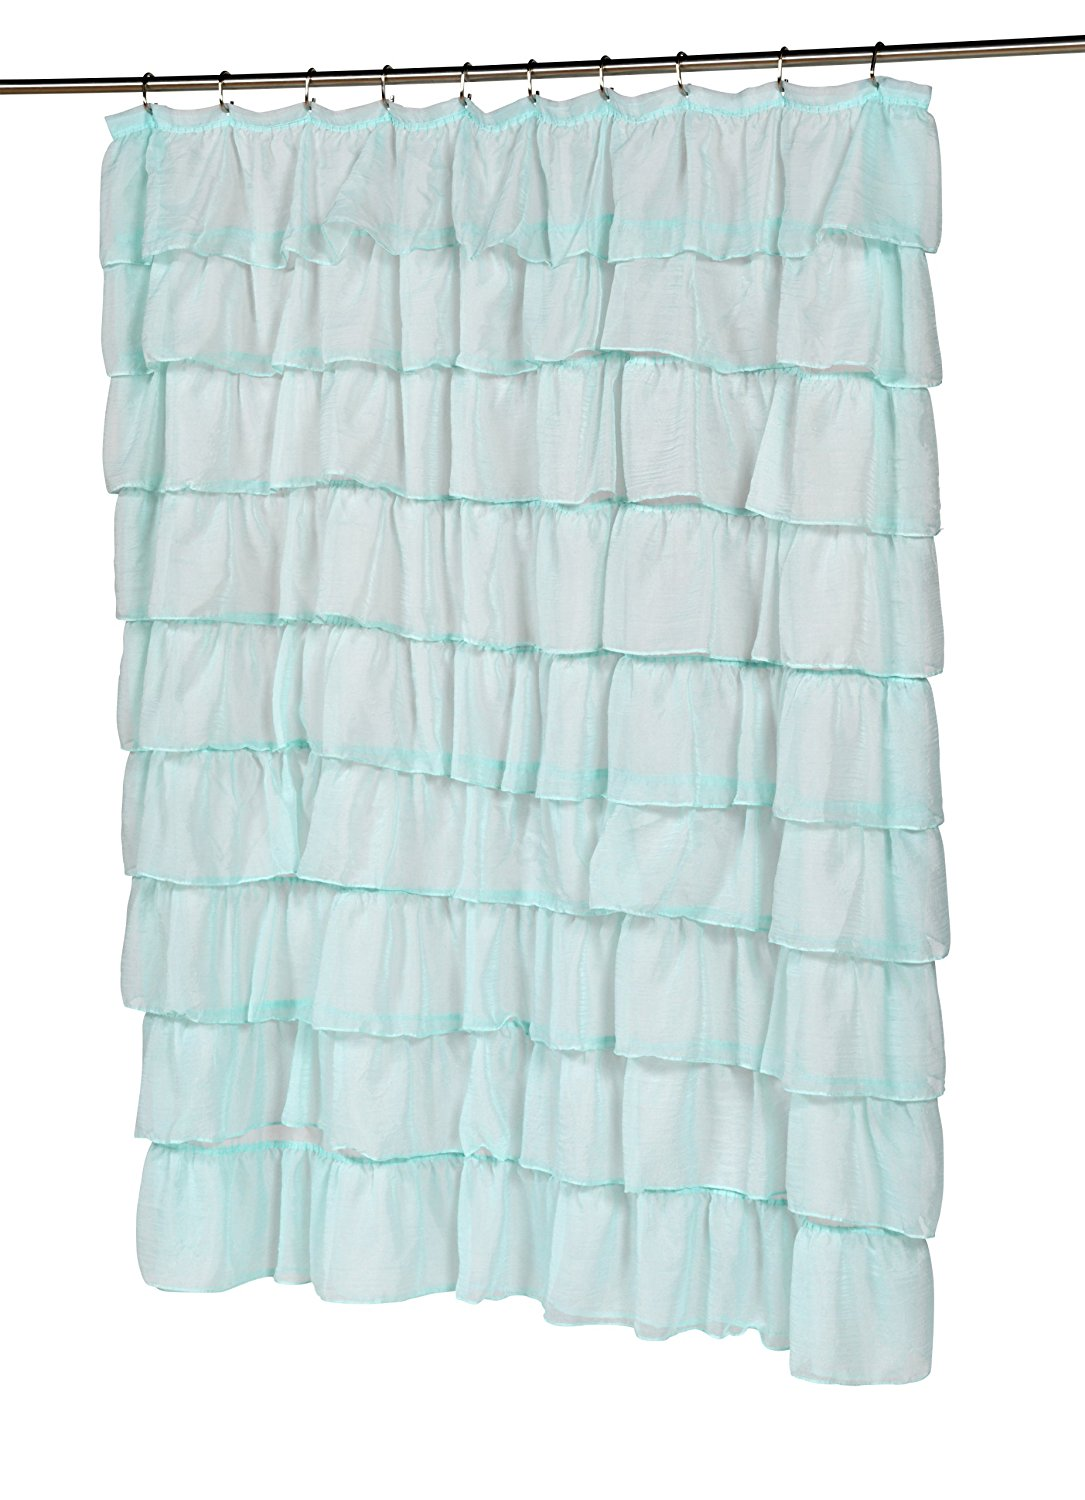 Carmen Blue Ruffled Tier 100 Polyester Fabric Shower Curtain Size